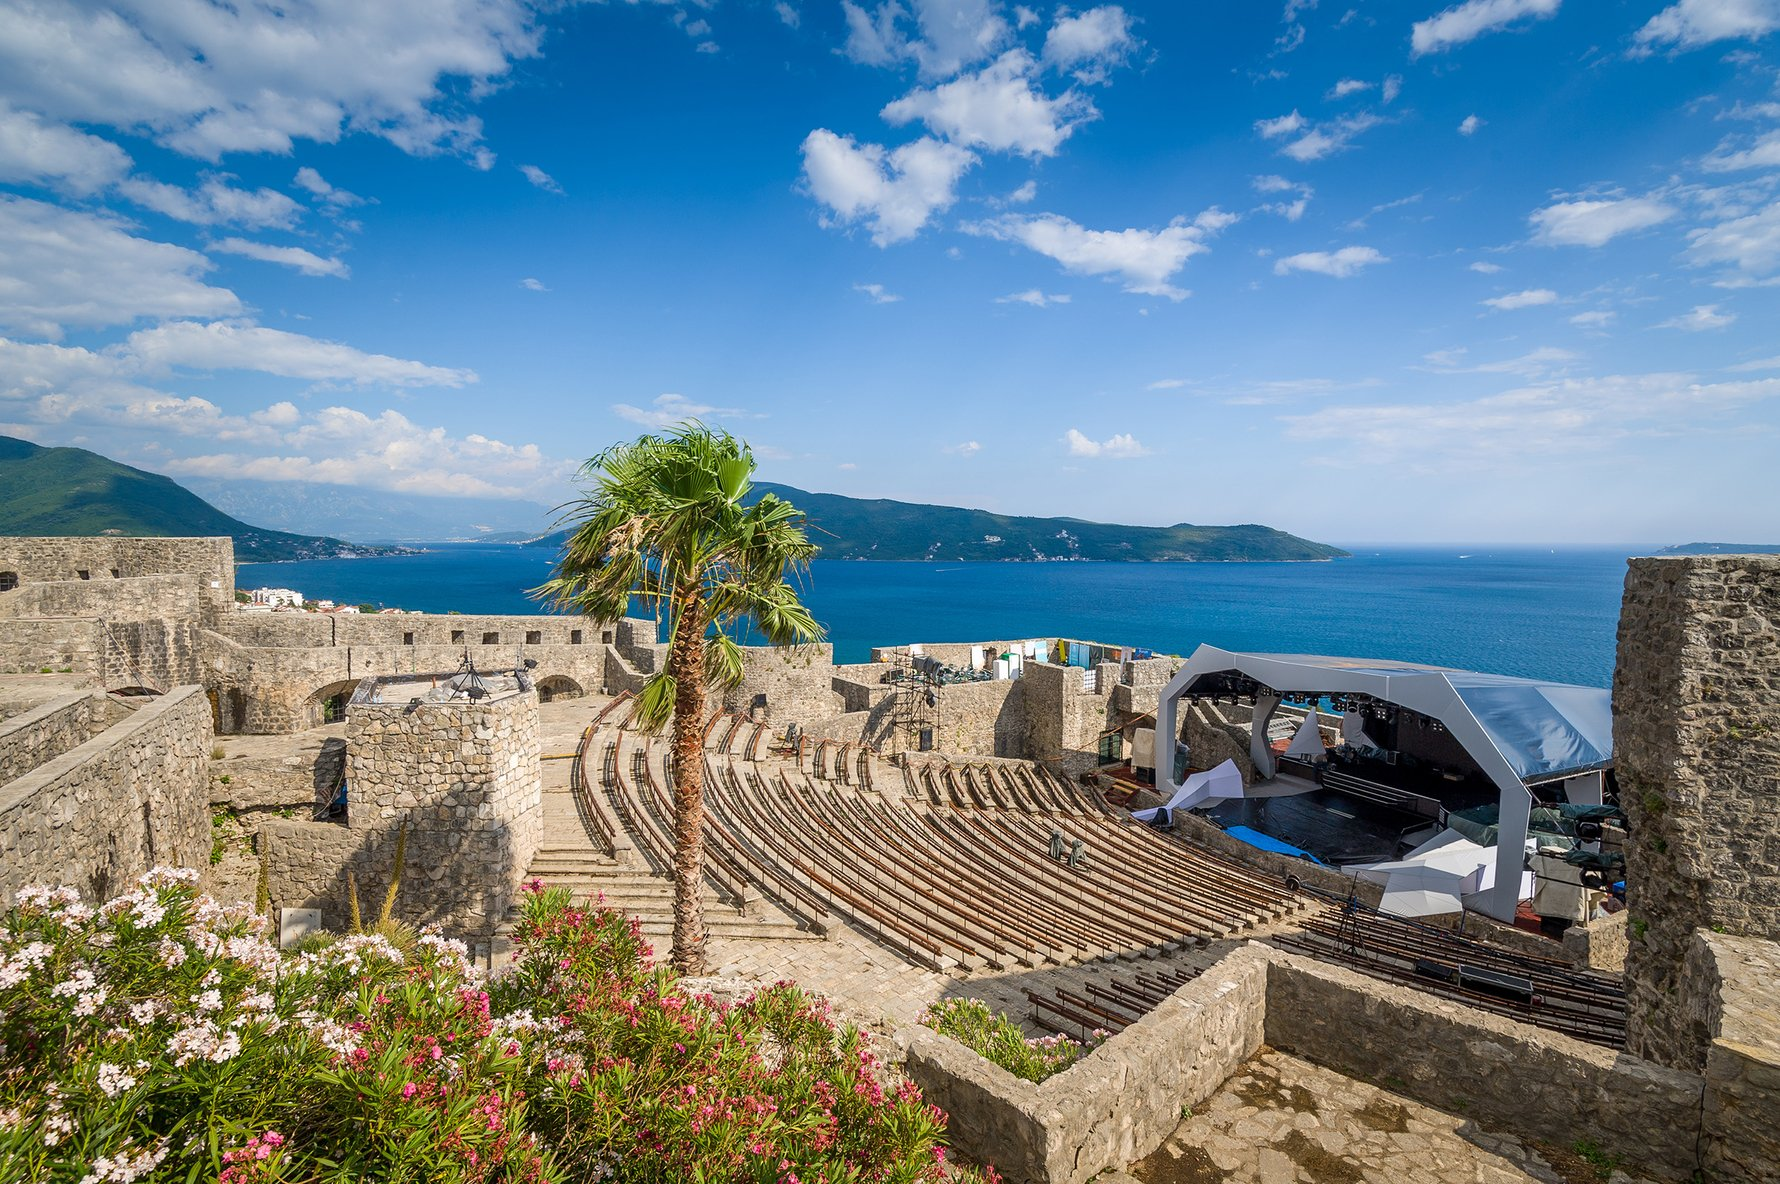 Herceg Novi's Kanli Kula Fortress is now an open air theatre with unrivalled views of the Mediterranean